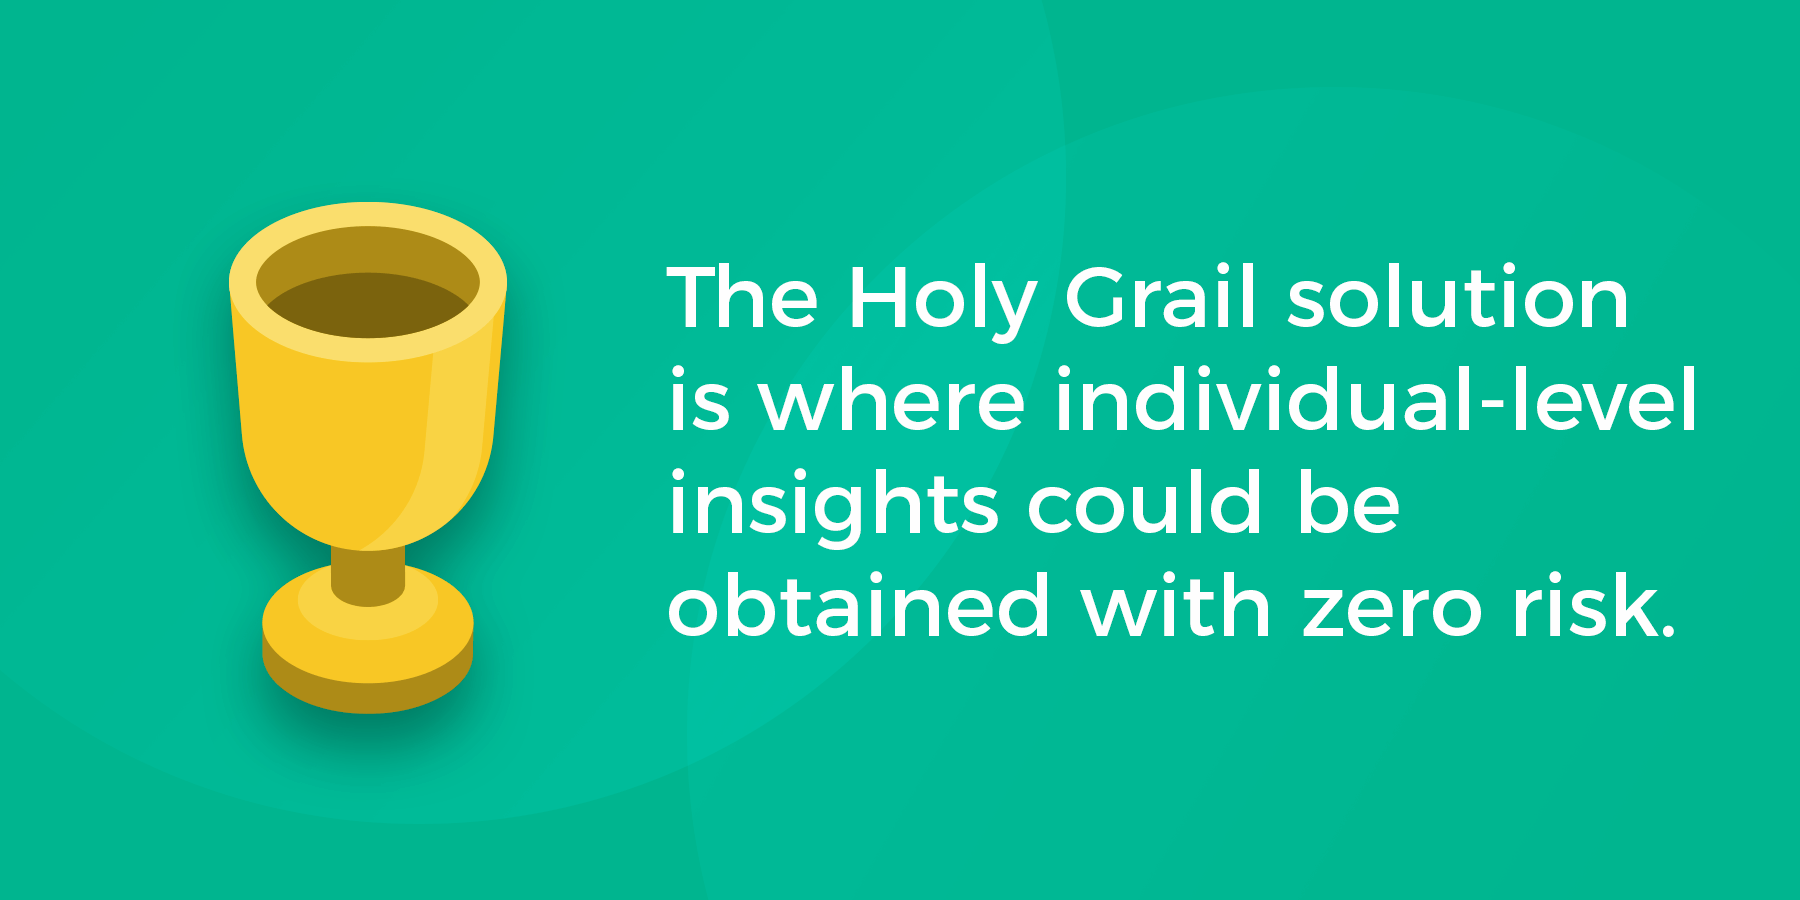 The Holy Grail solution is where individual-level insights could be obtained with zero risk